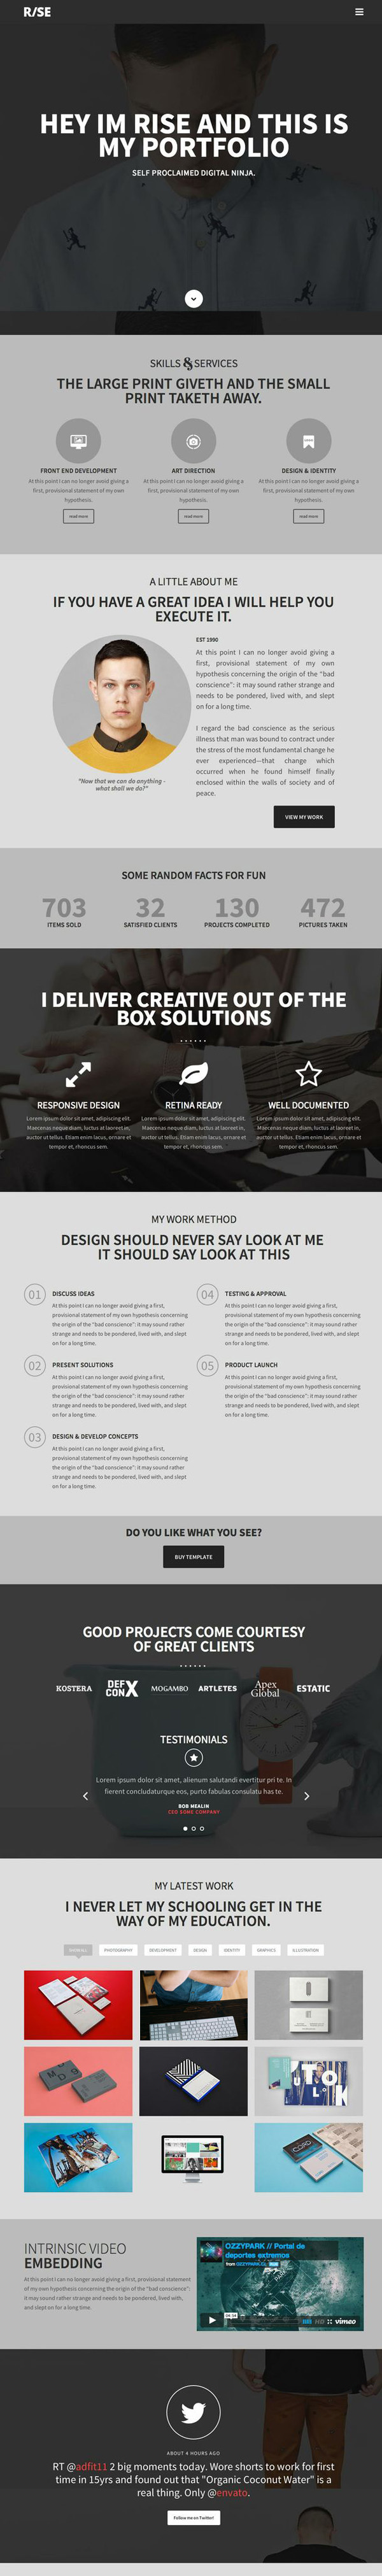 Modern Responsive HTML5 CSS3 Website Templates | Design | Graphic ...